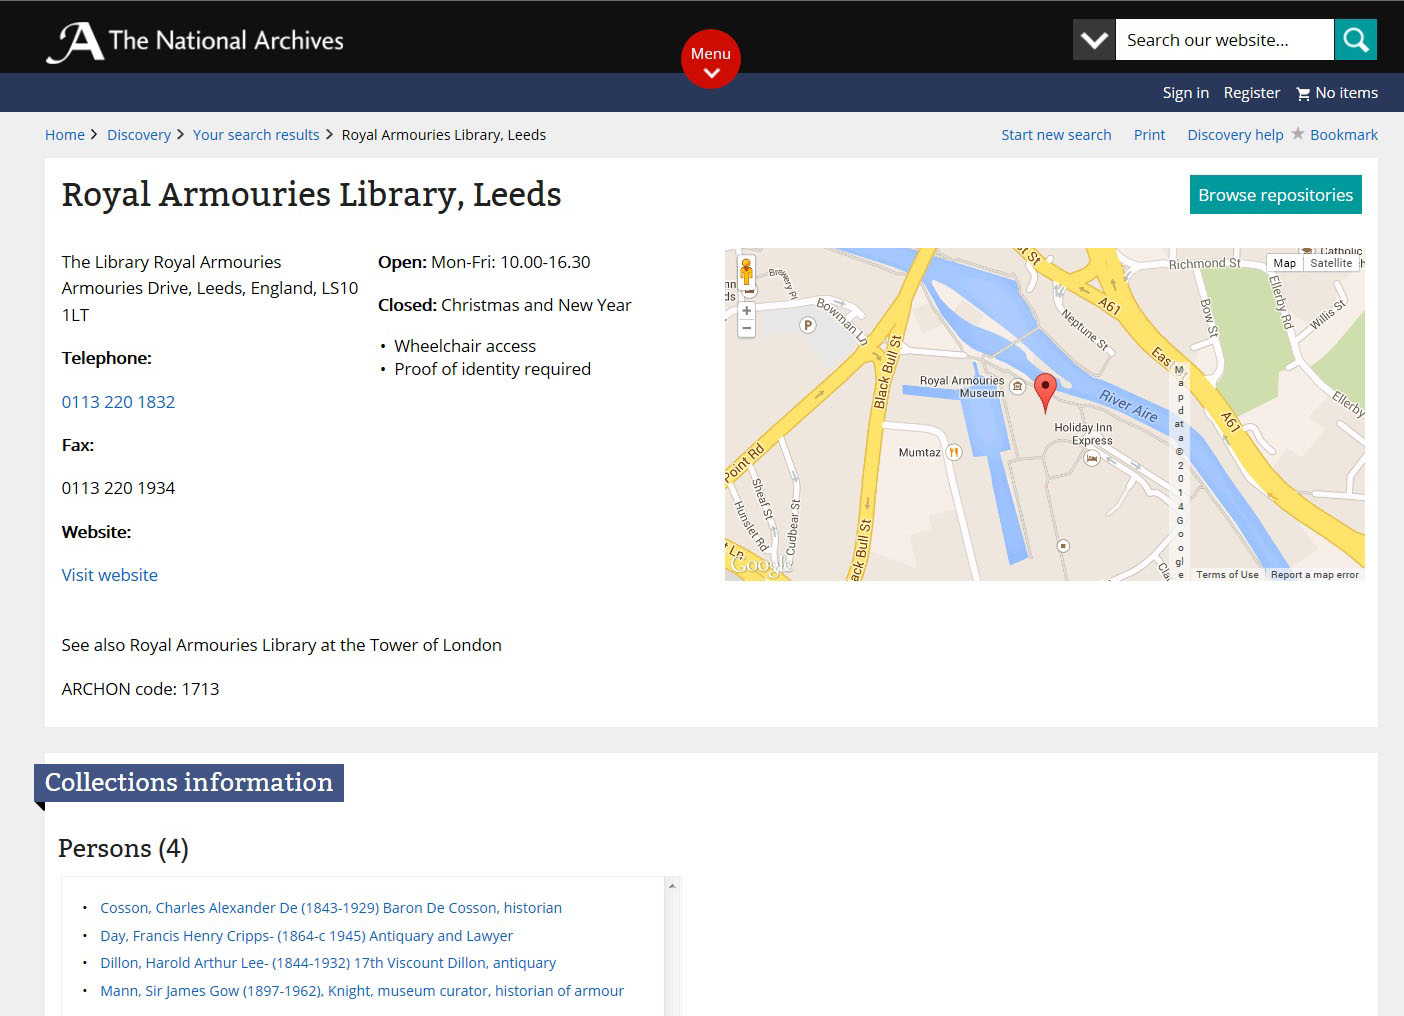 Screenshot showing details of an archive